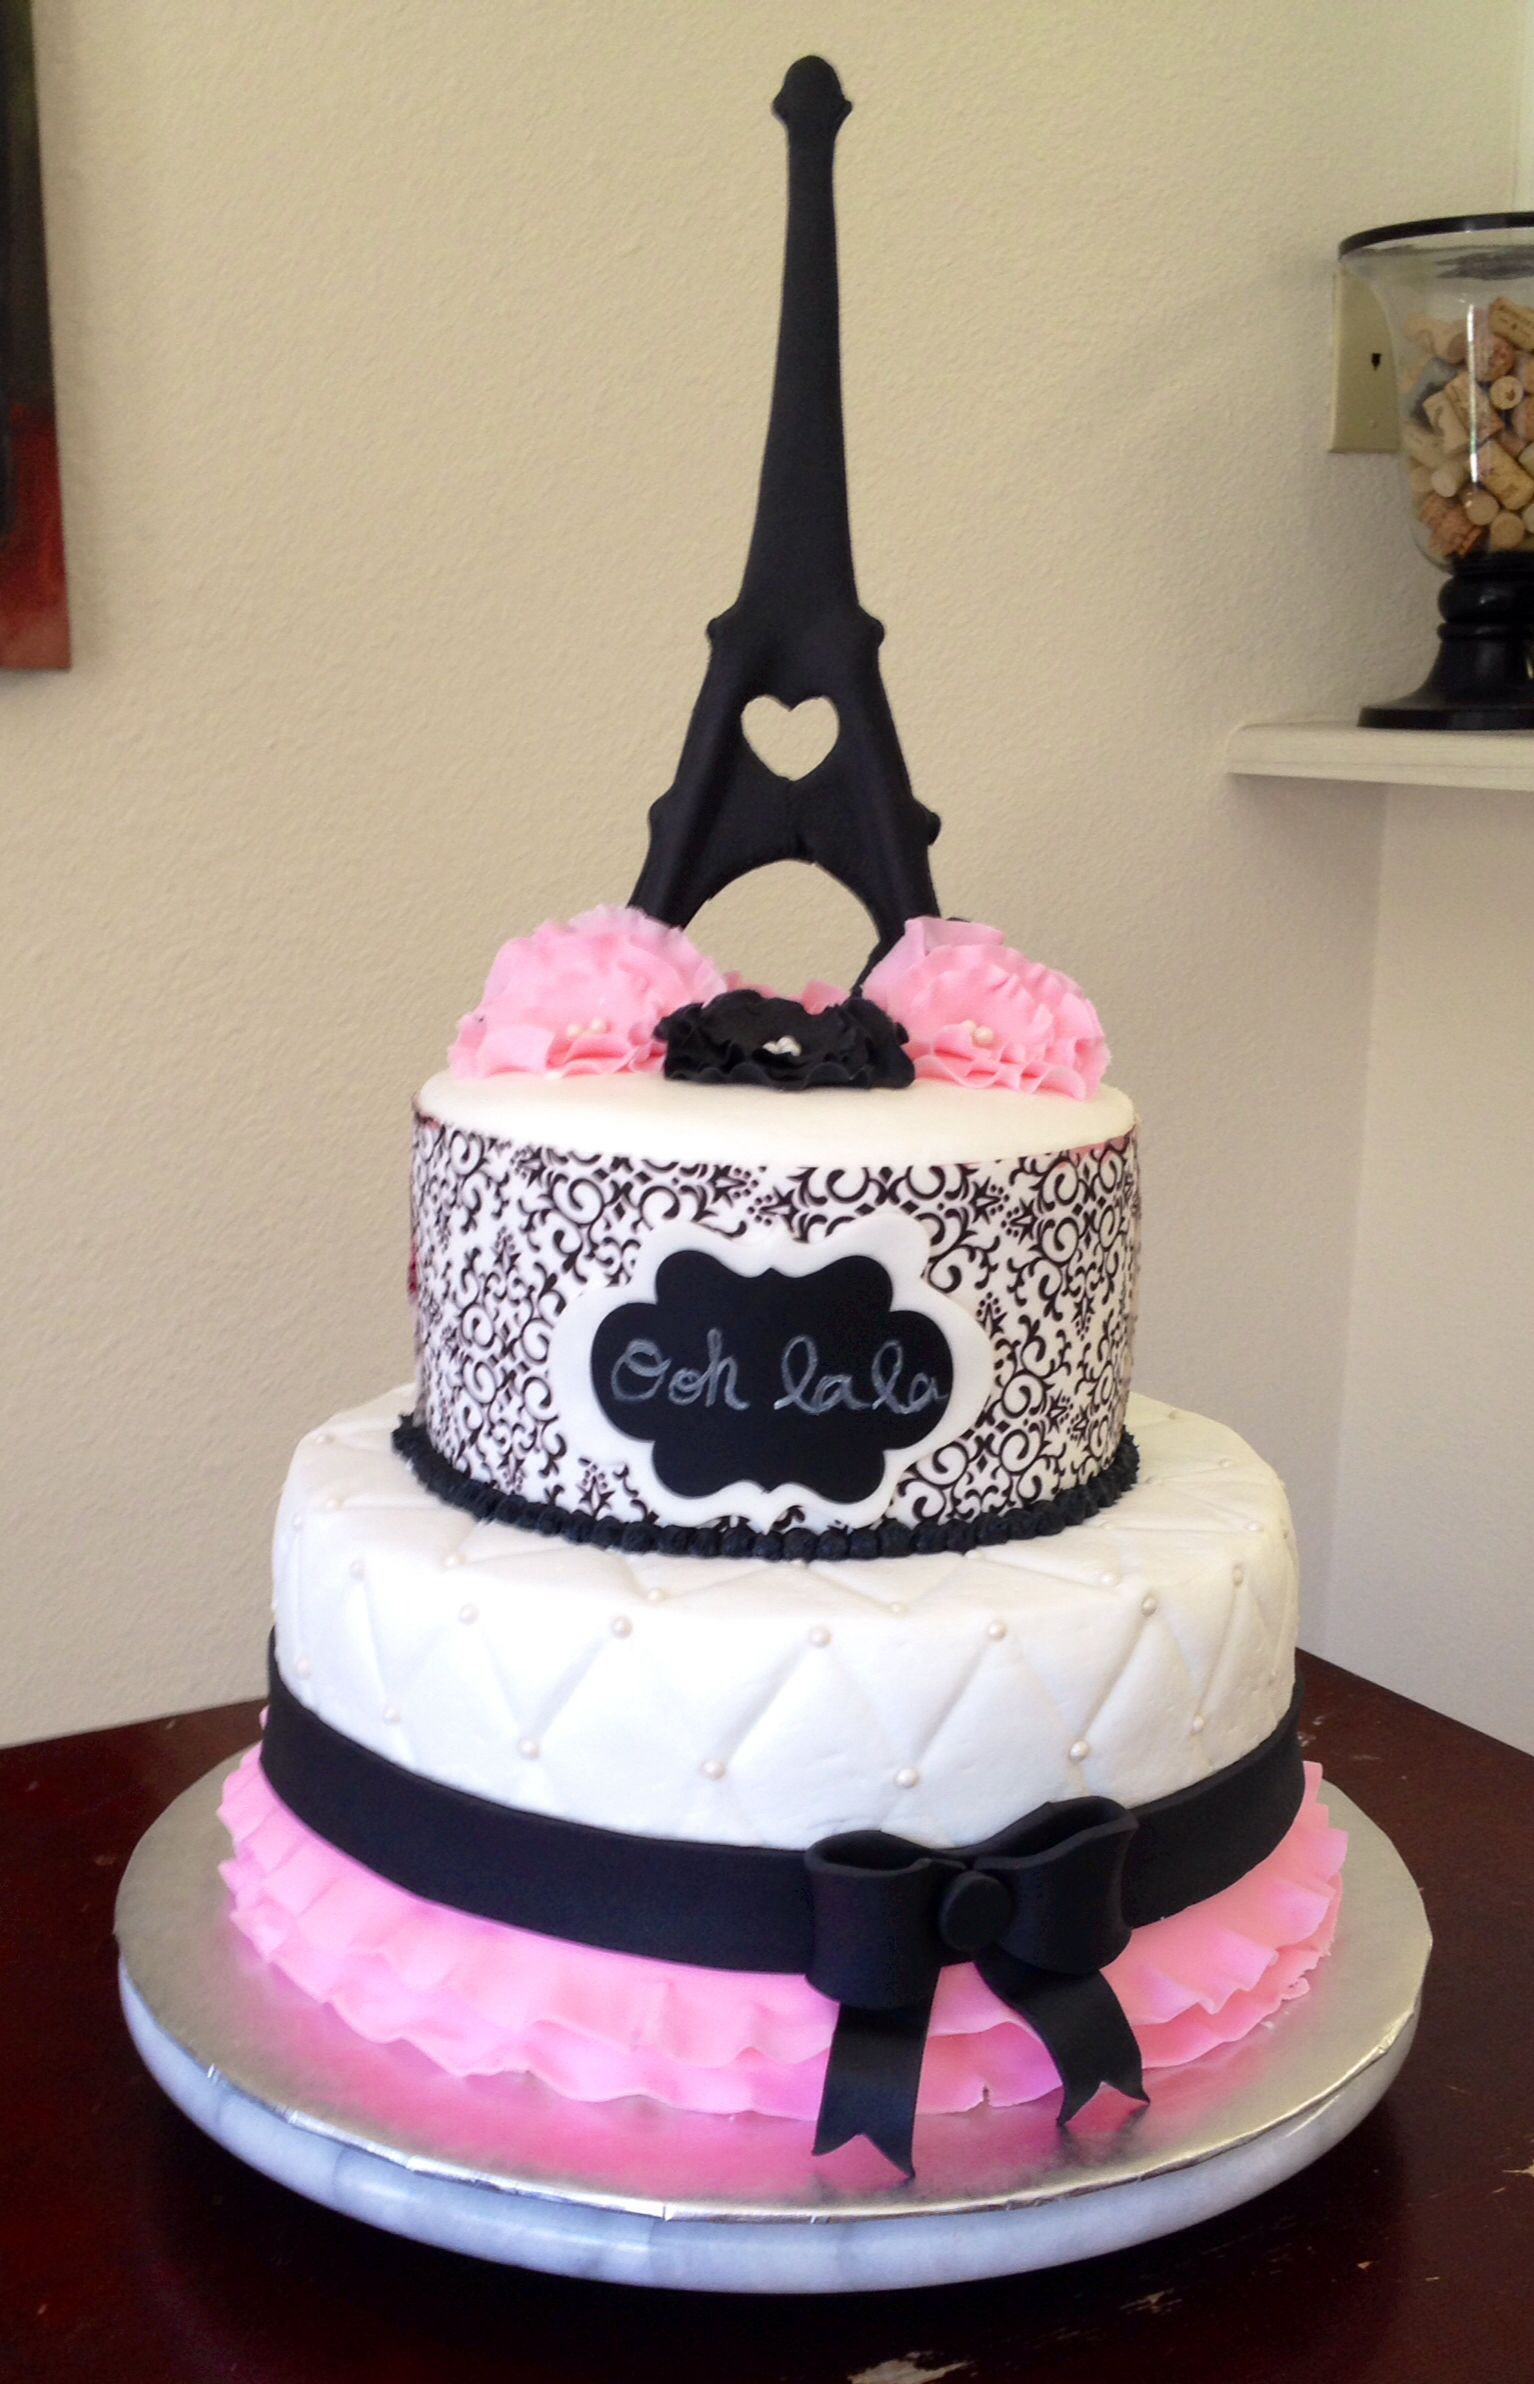 Paris Birthday Cake Como Fazer Bolo De Aniversrio Tema Paris Beautifulamazing Cakes